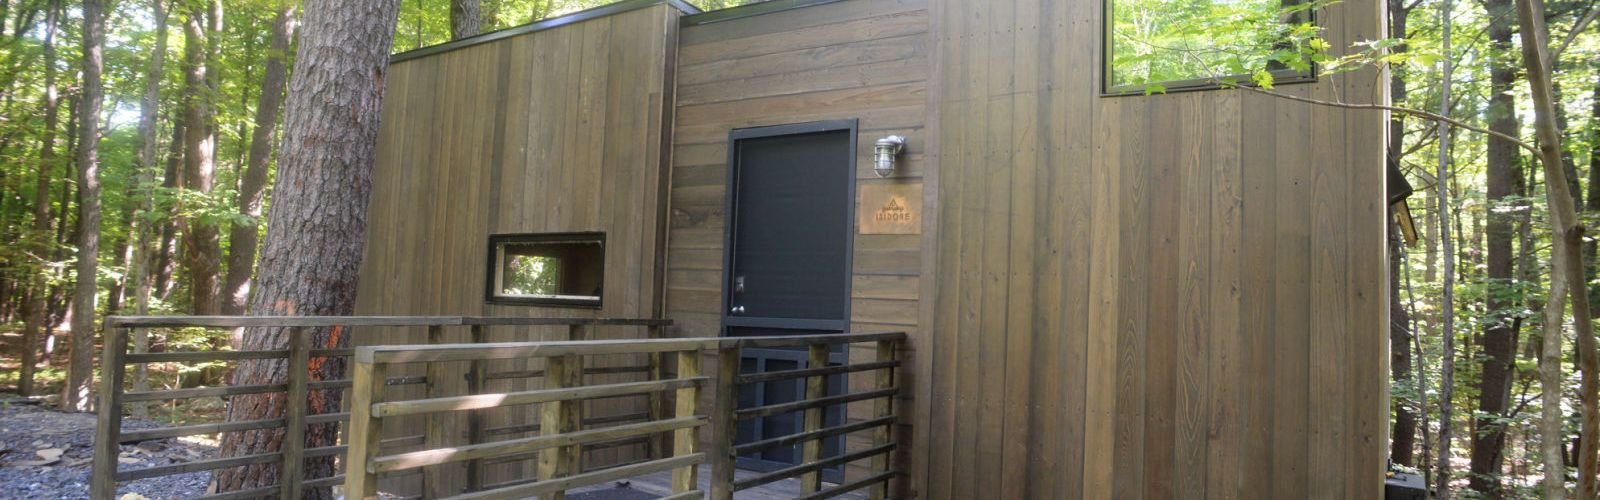 Wheelchair accessible tiny houses a big option for people for Wheelchair accessible houses